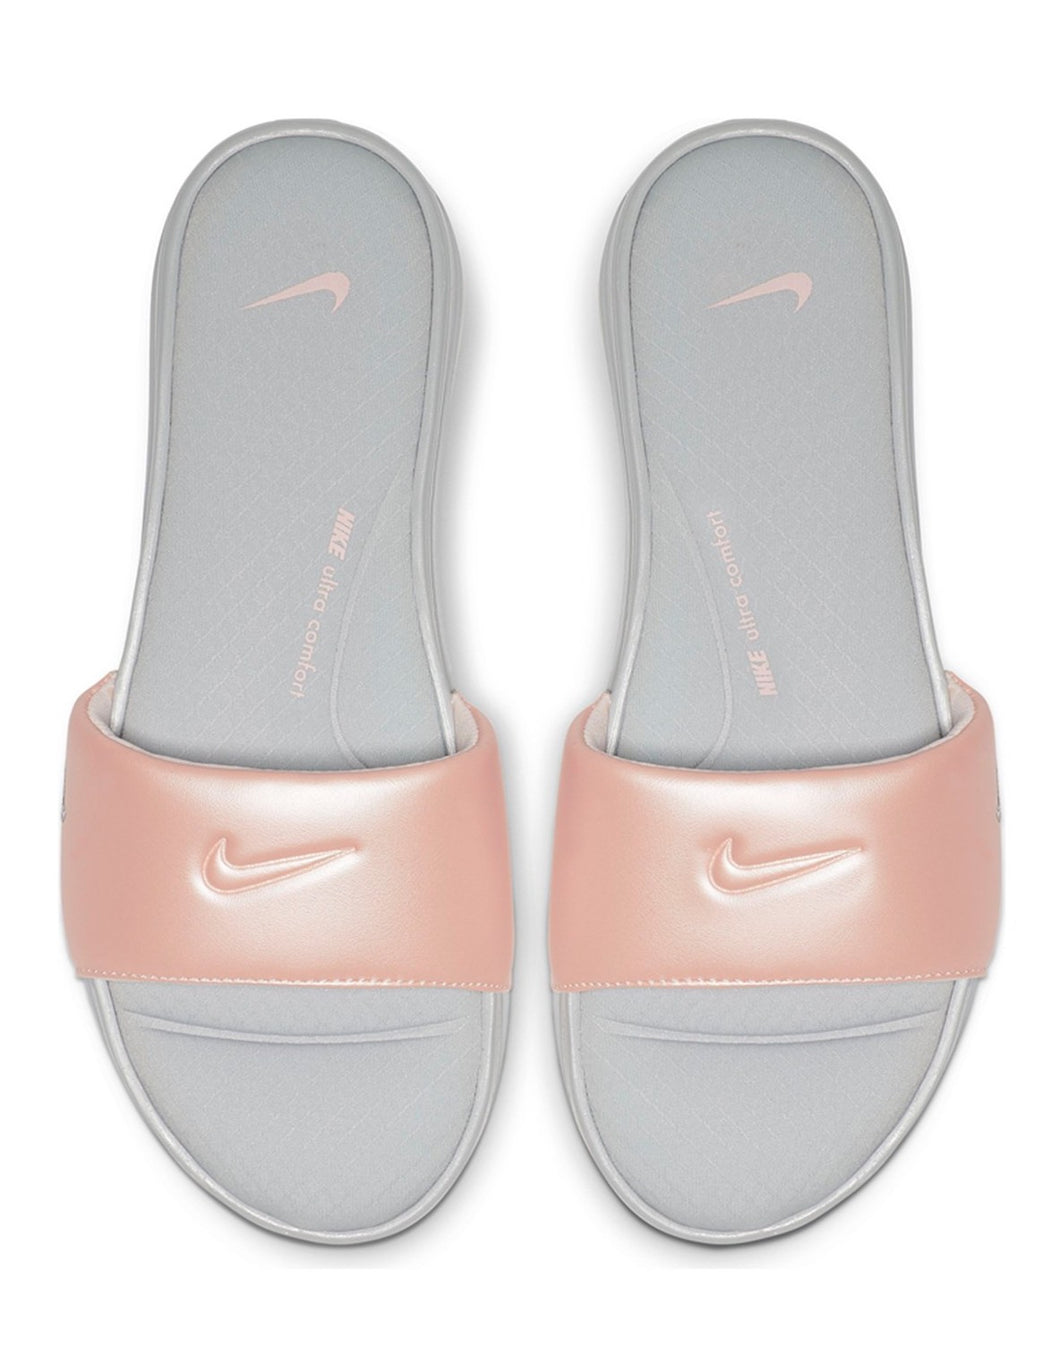 Women's Nike Ultra Comfort 3 Slides (Wolf Grey/Echo Pink)(AR4497-008)